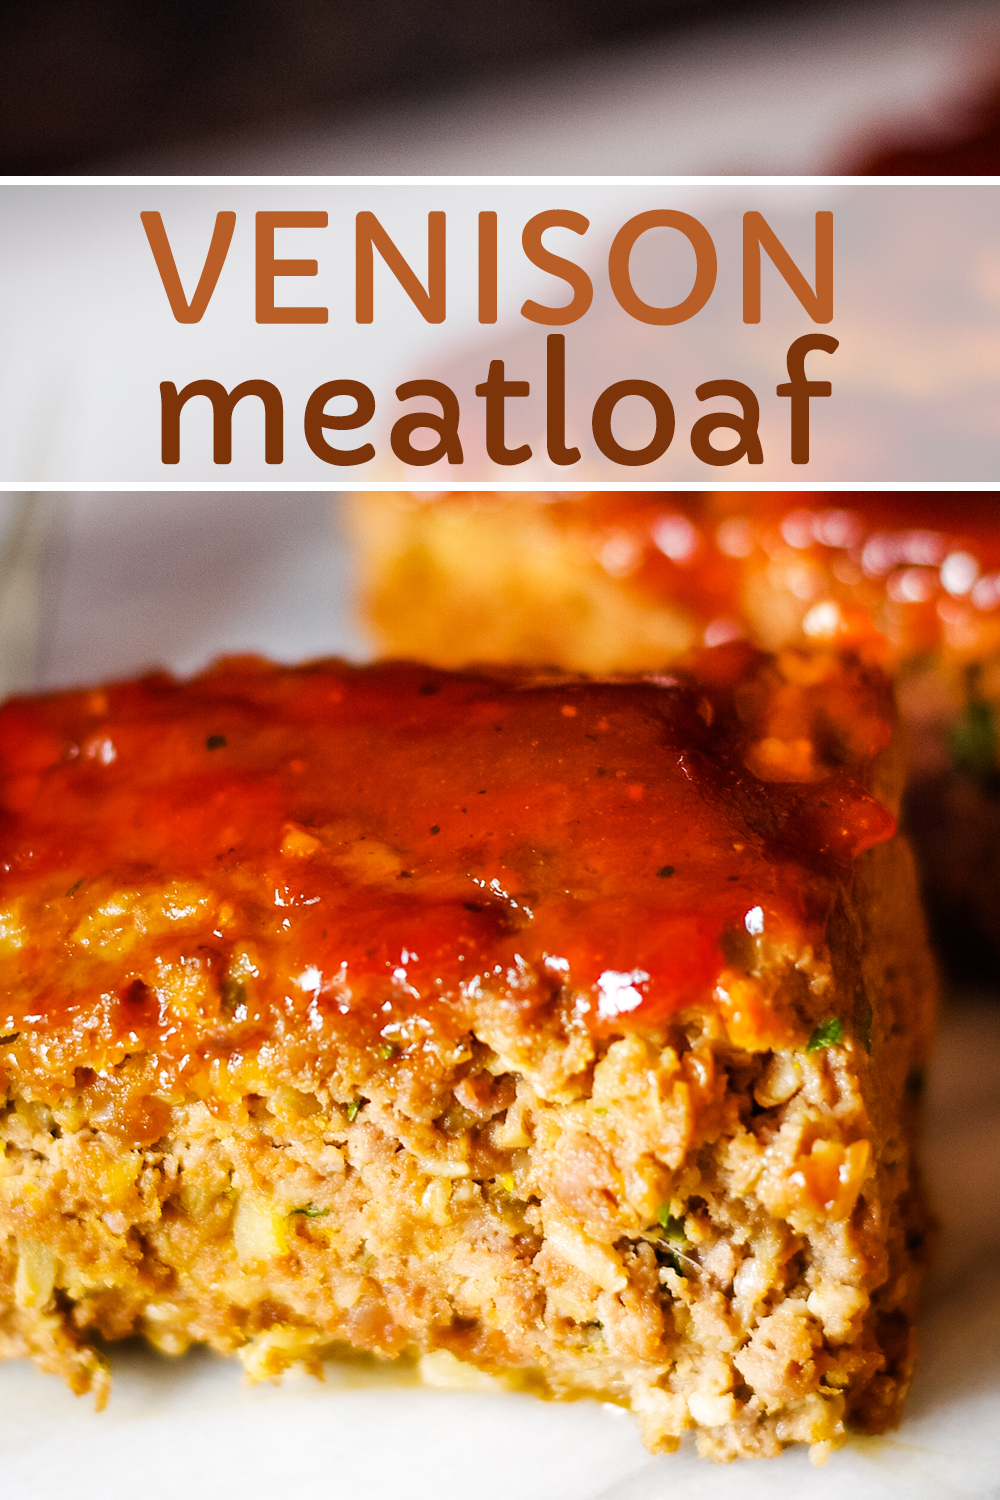 This Venison Meatloaf Recipe Is Super Moist Delicious And Easy To Make Made With Hearty Ingredient Venison Recipes Venison Meatloaf Venison Meatloaf Recipe